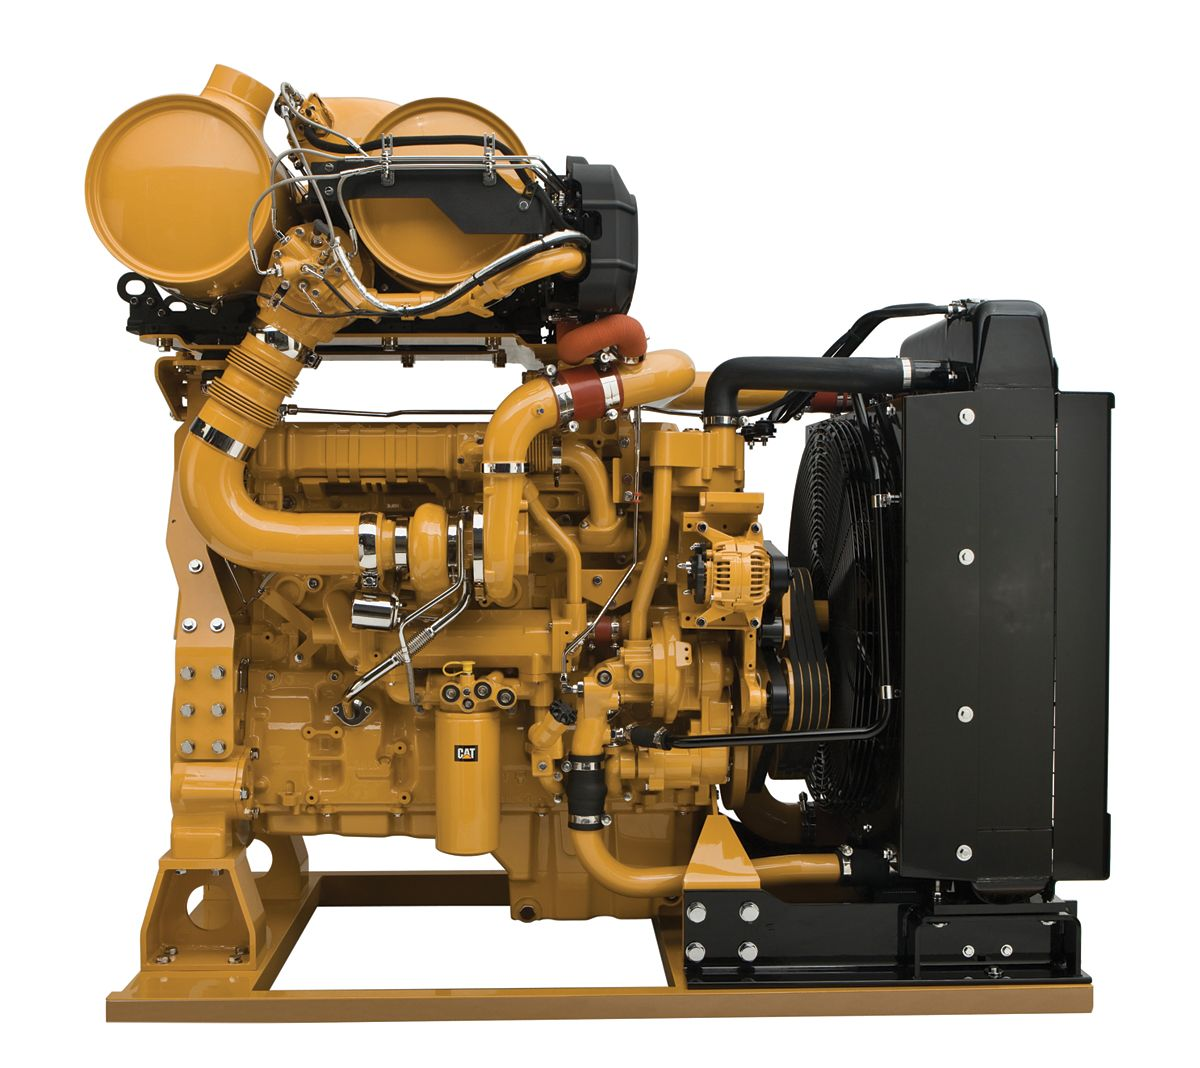 C13 ACERT™ Tier 4 Final Petroleum Engine